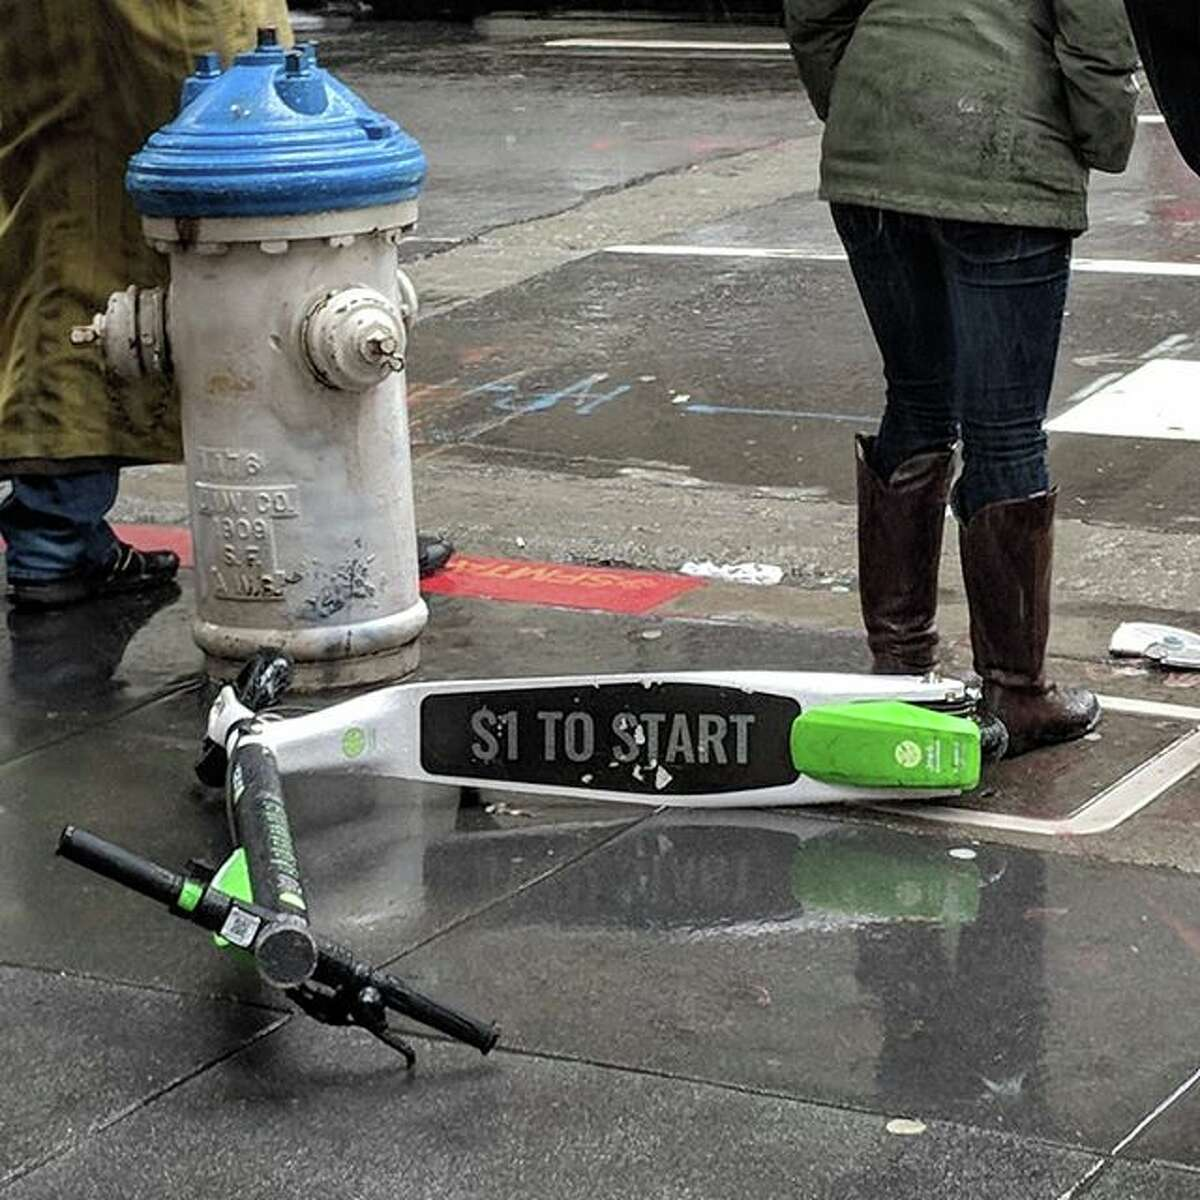 People in San Francisco share photos of badly parked or trashed scooters.